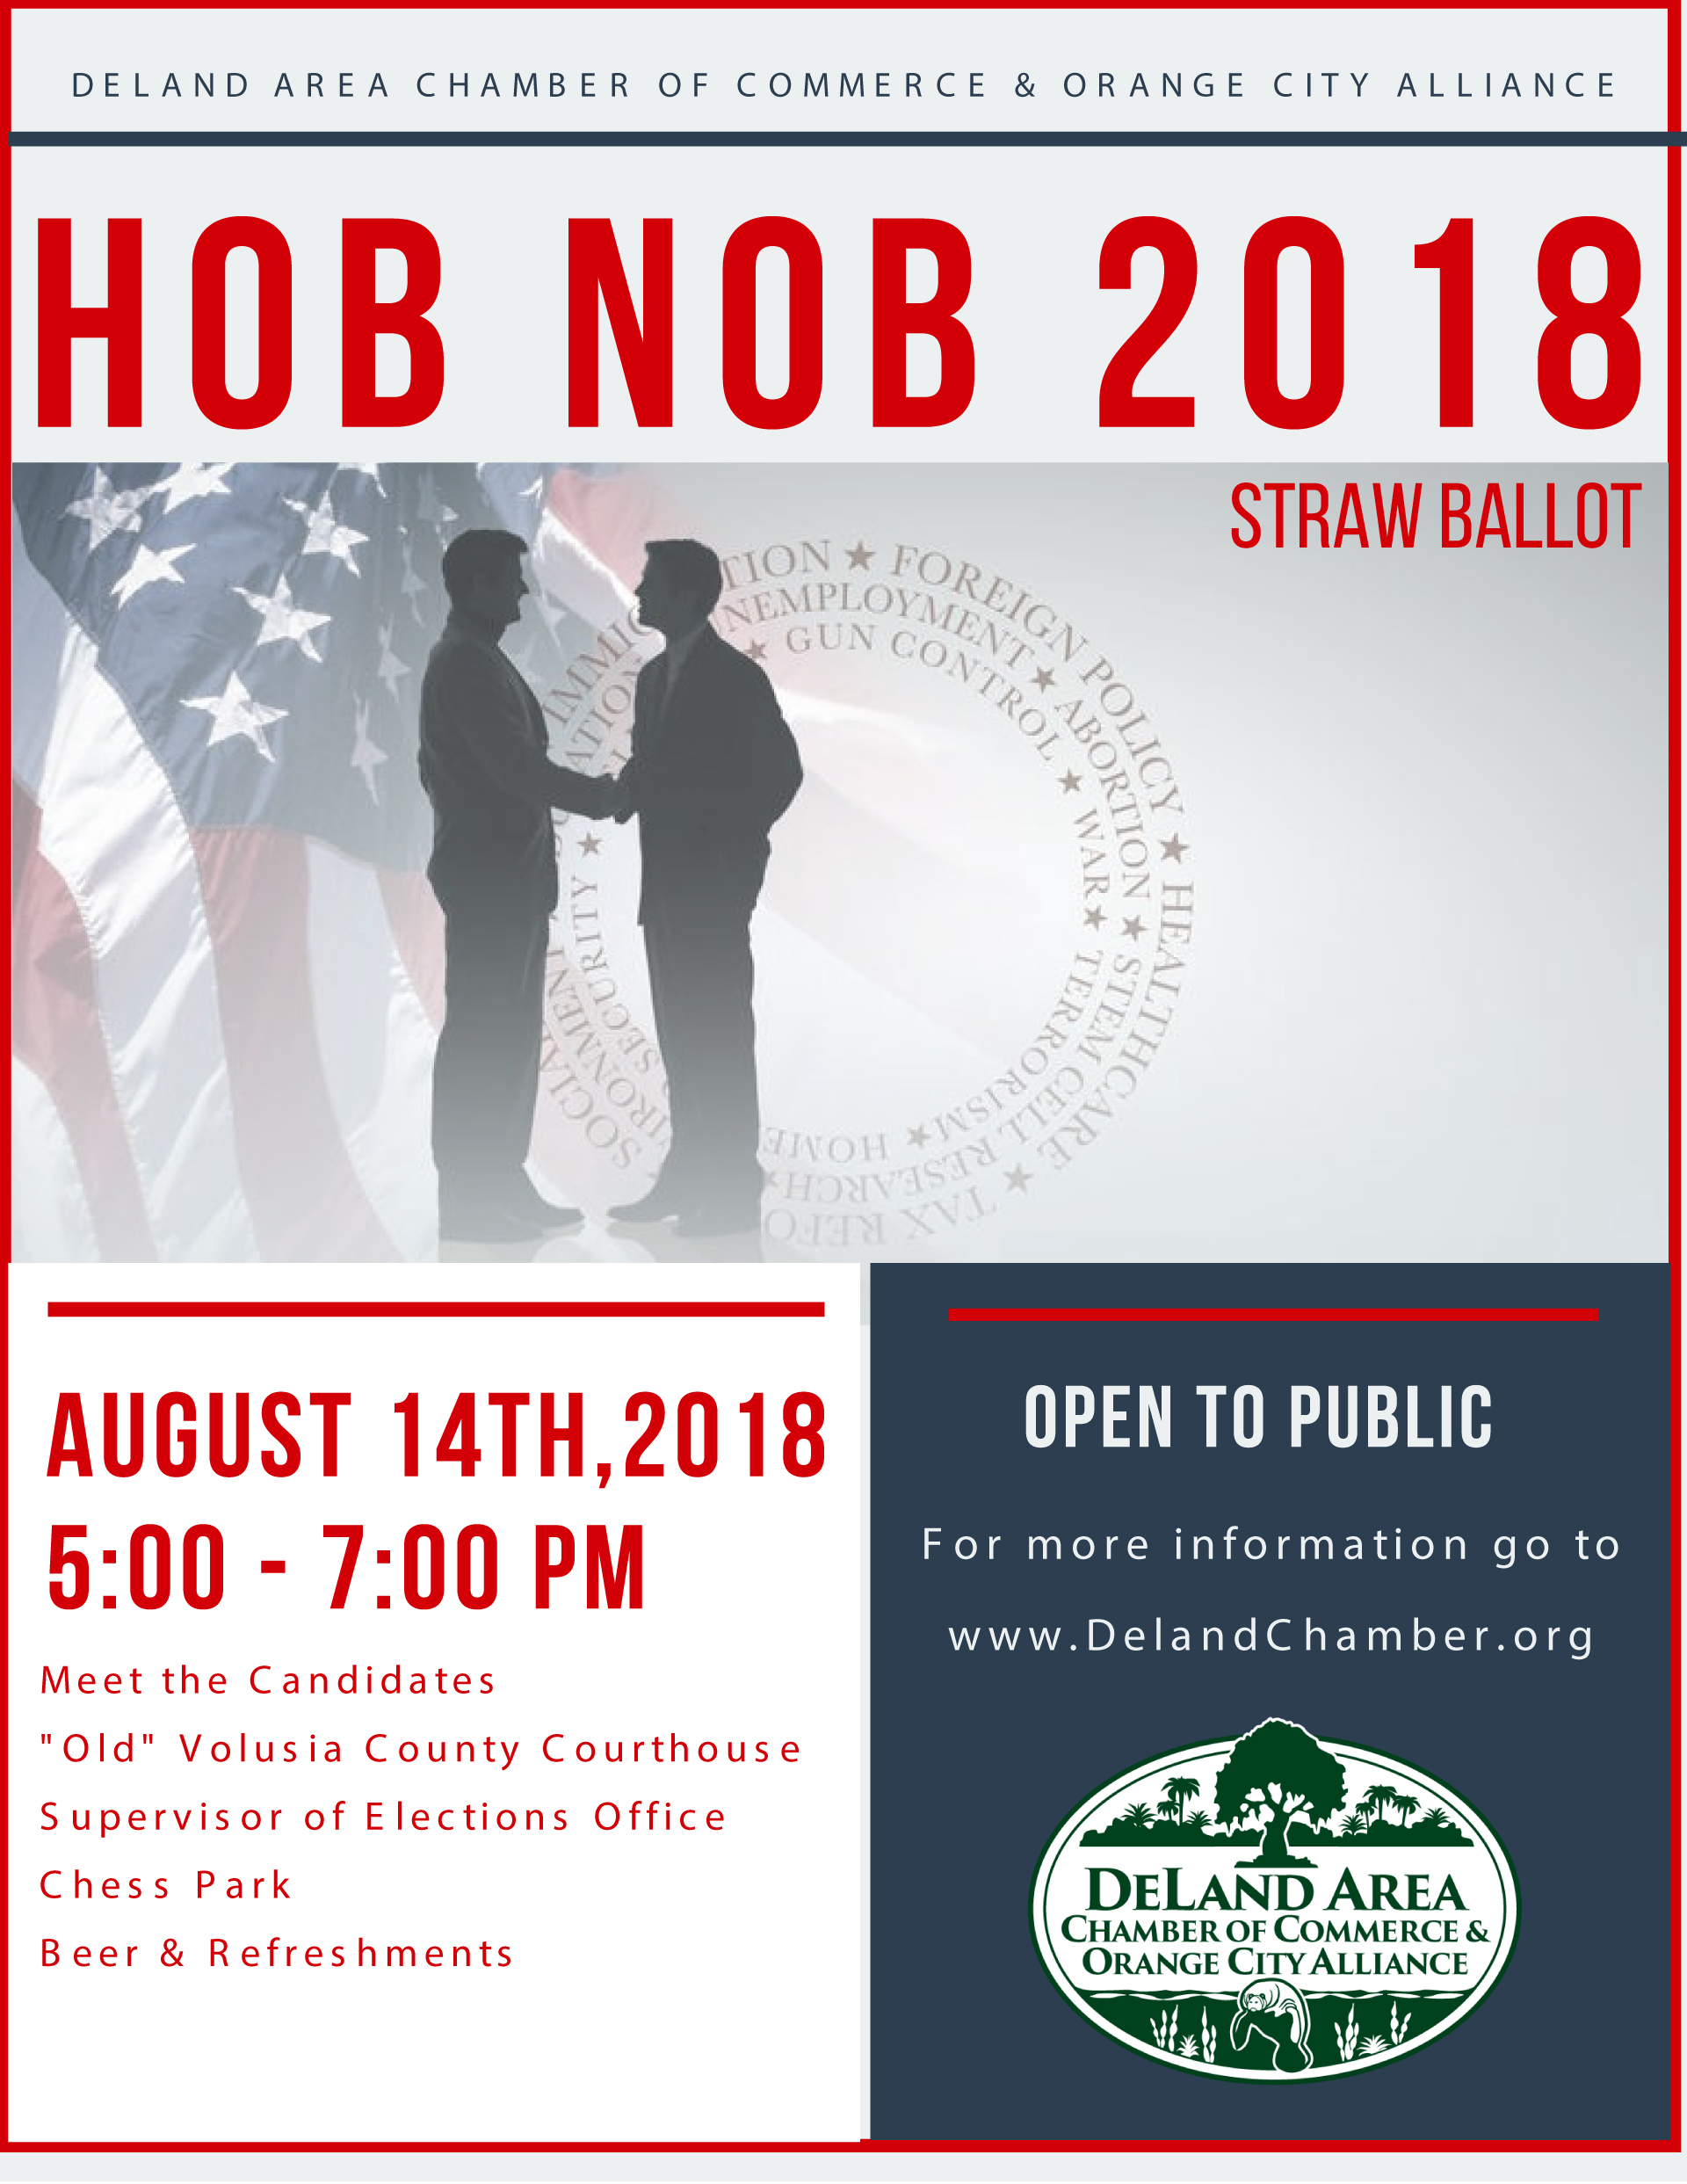 DeLand Area Chamber of Commmerce 2018 Political Hob Nob